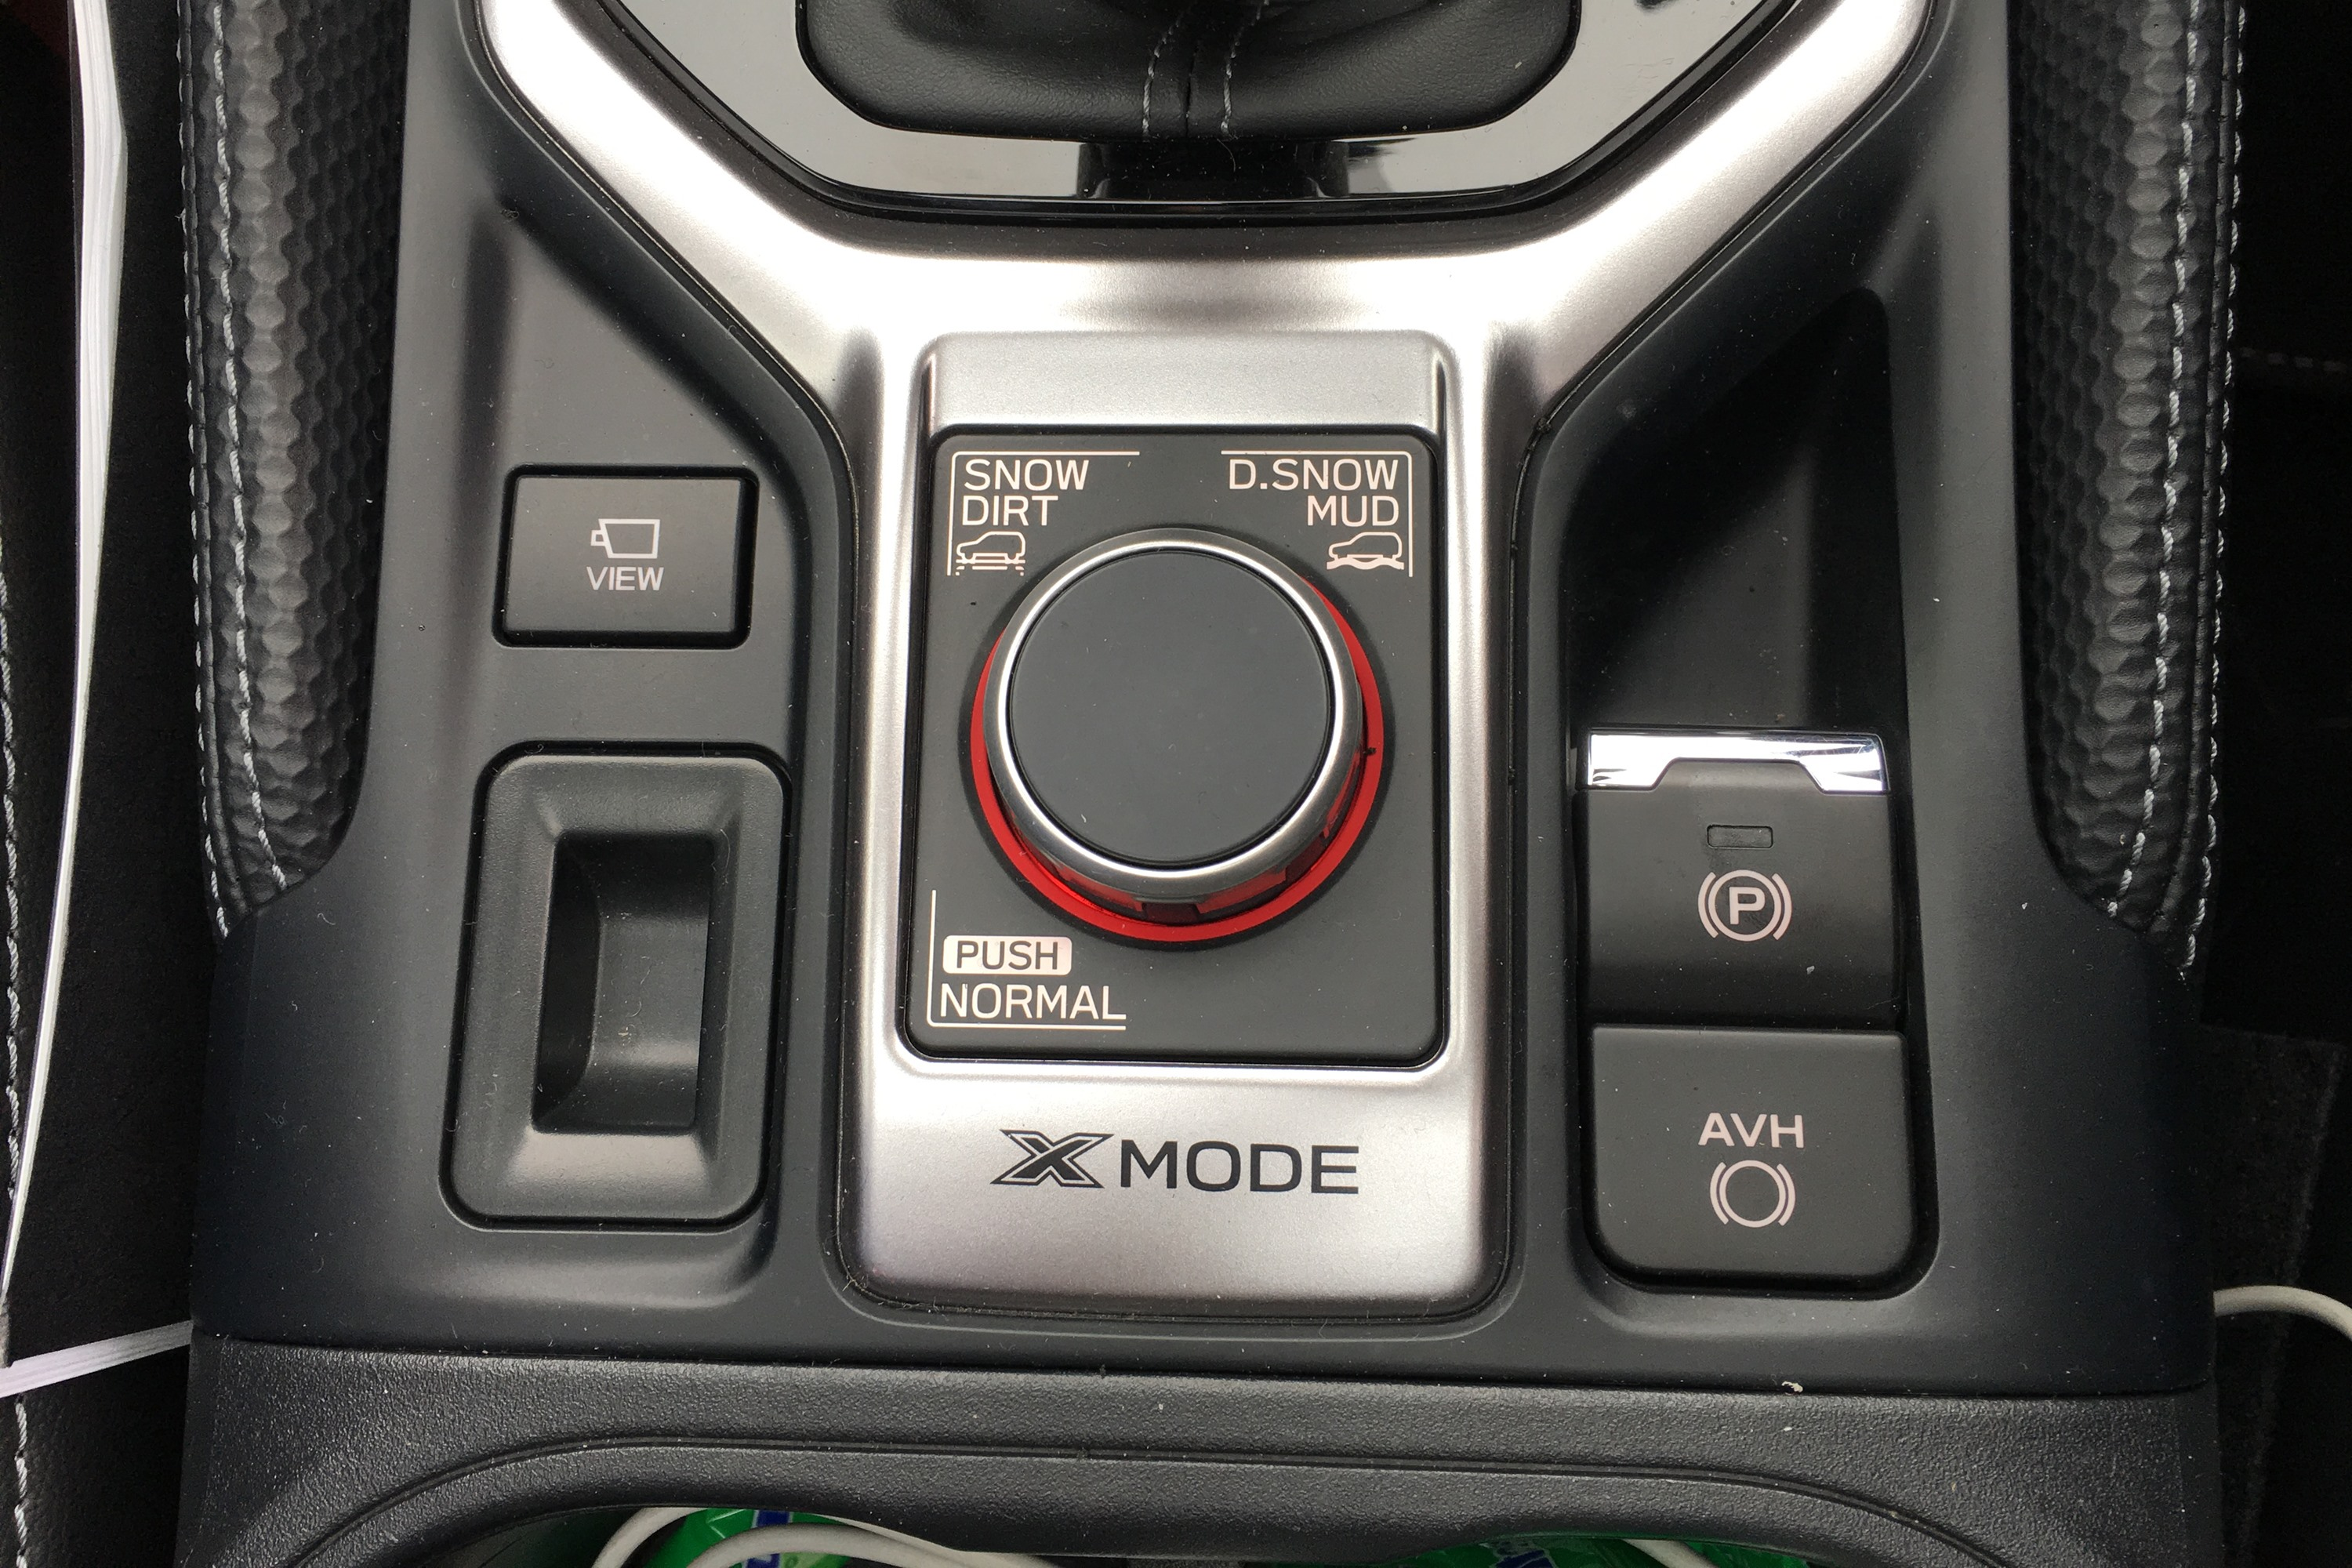 Subaru Forester X Mode controls